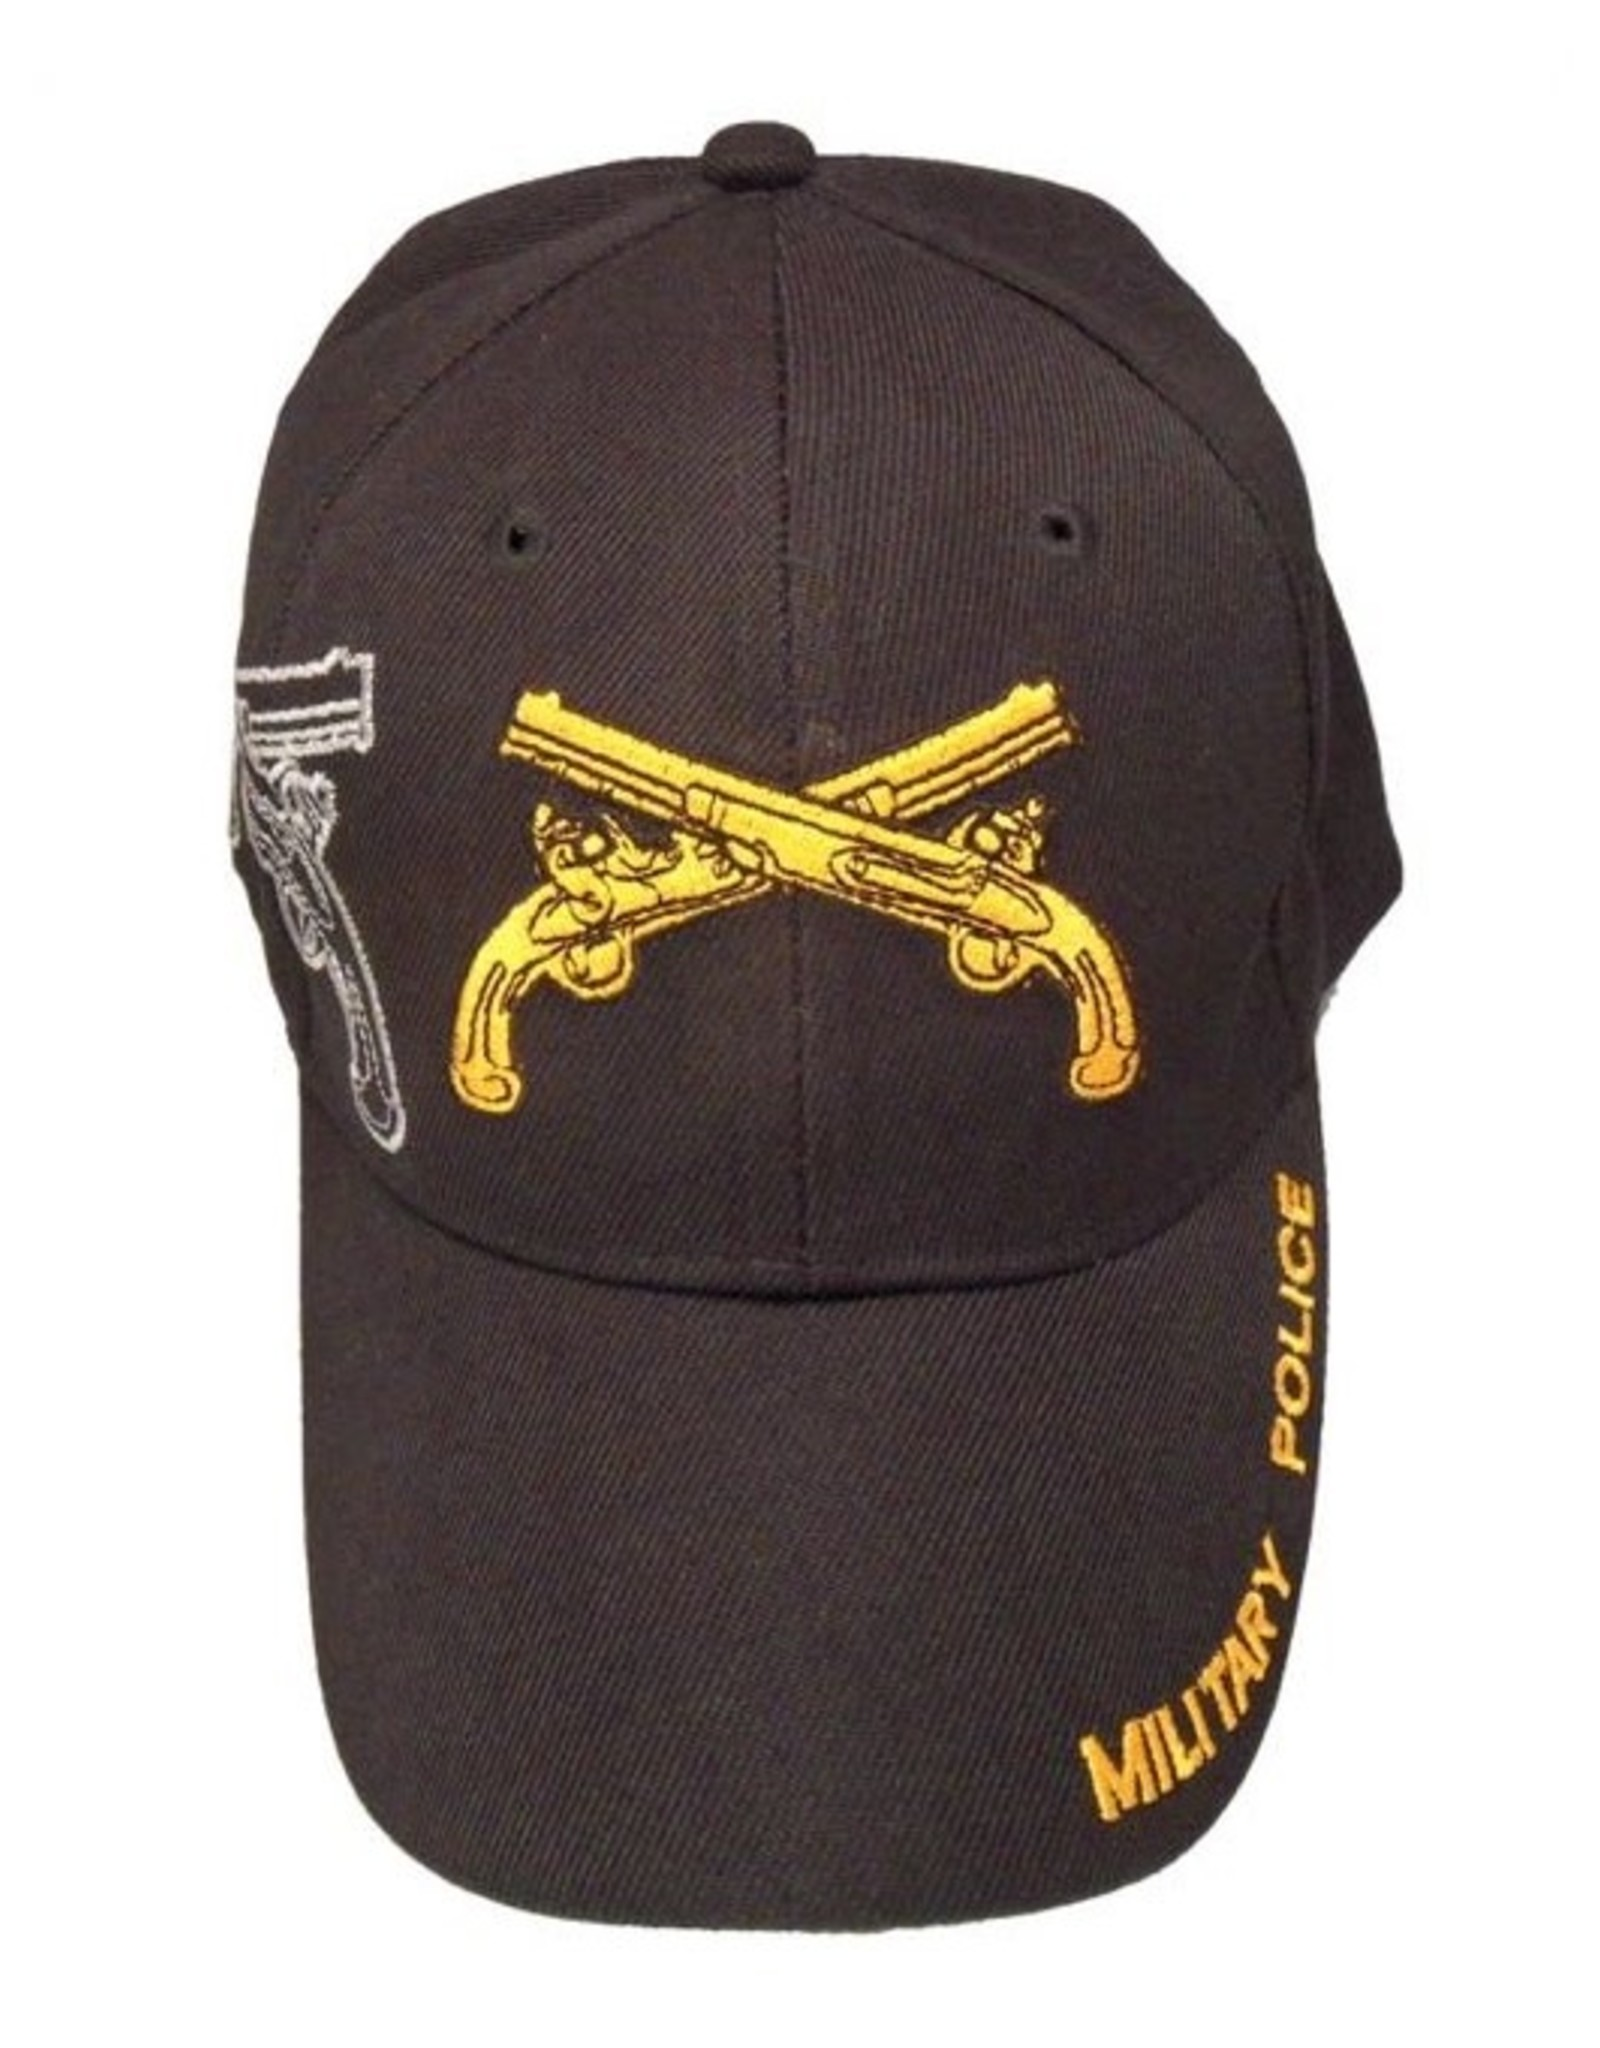 MidMil Army Military Police Hat with Emblem and Shadow Black